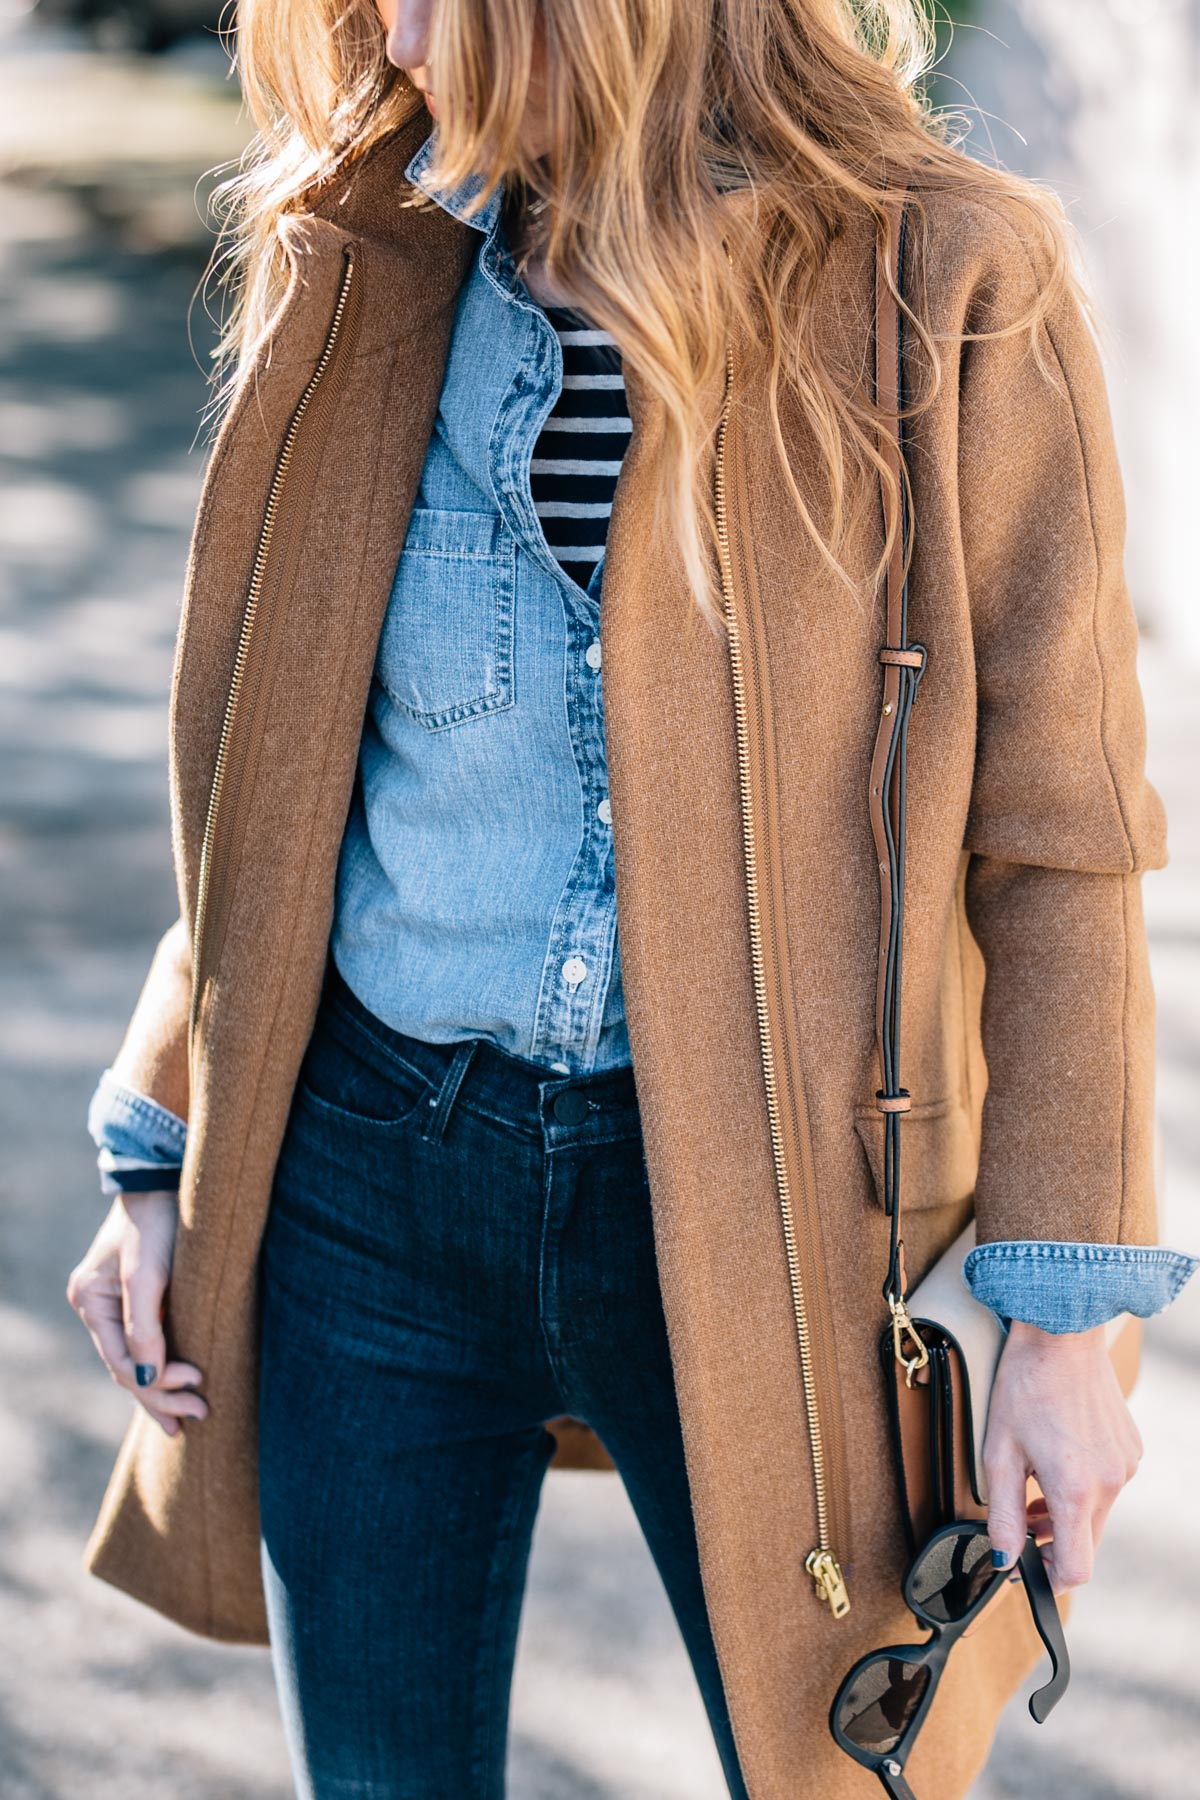 How to layer clothes by Jess Ann Kirby wearing a J.Crew Chambray Shirt and Cocoon Coat